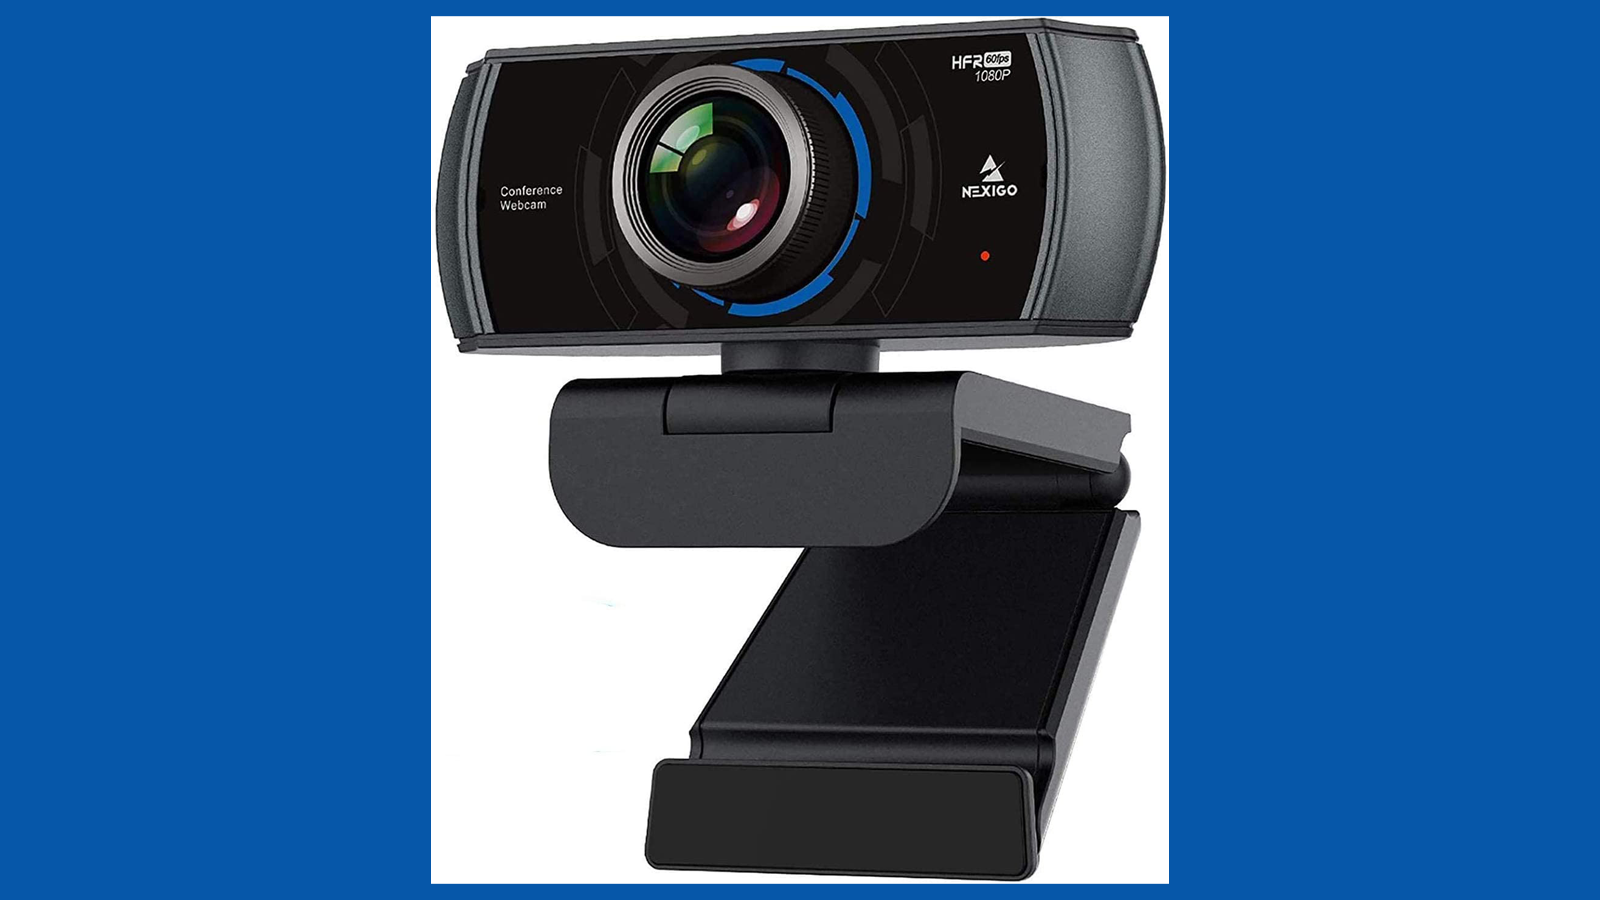 Look Sharp on Your Next Video Call with This 1080p High-Definition Webcam